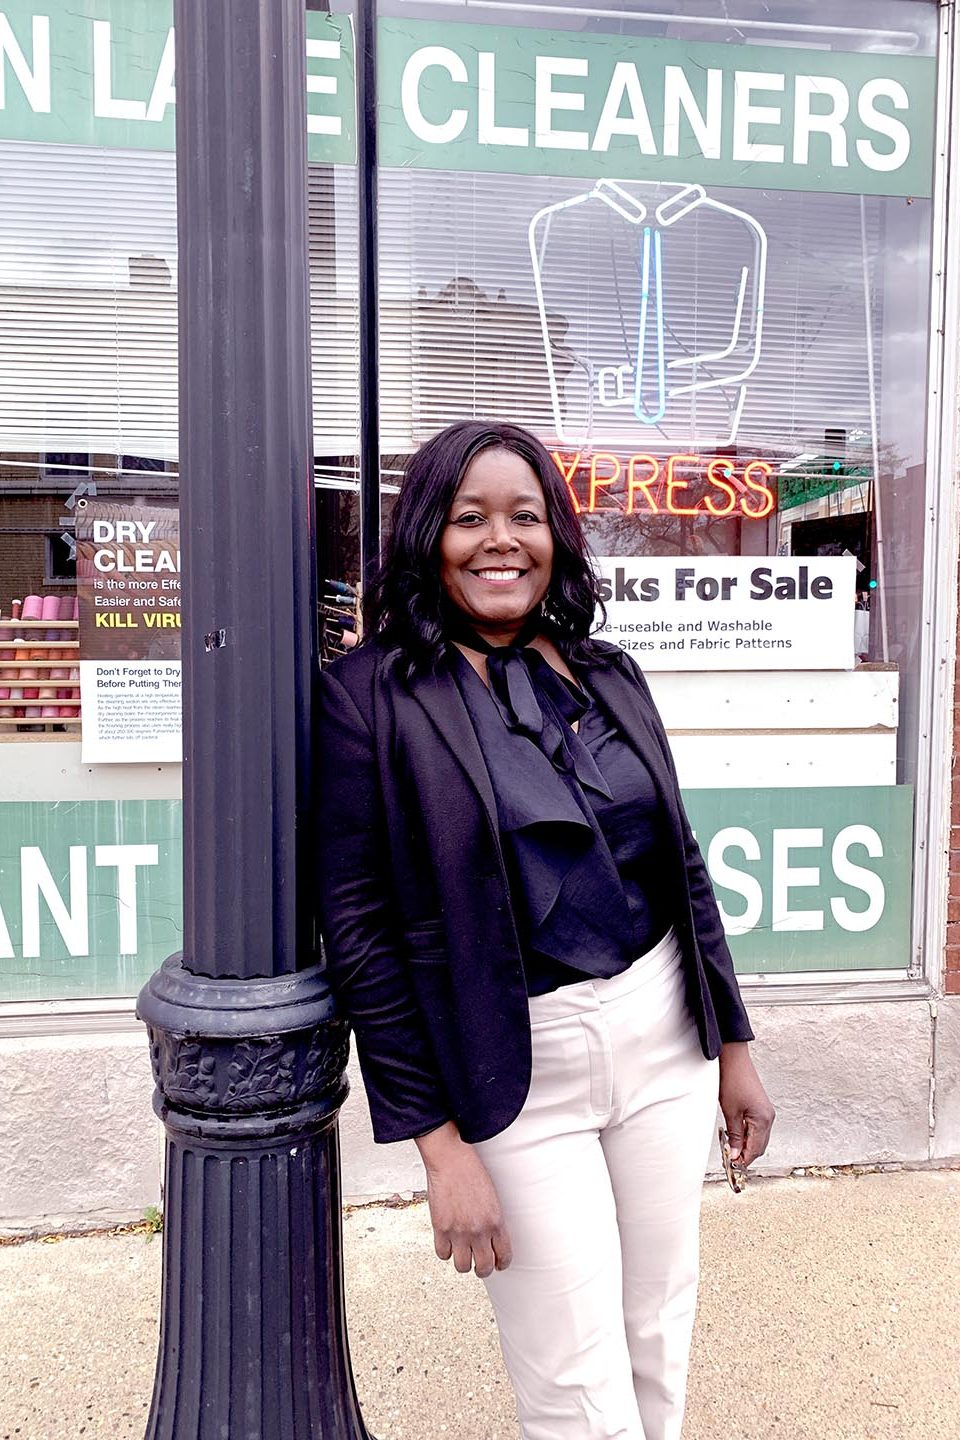 Photo of Maude in front of a store